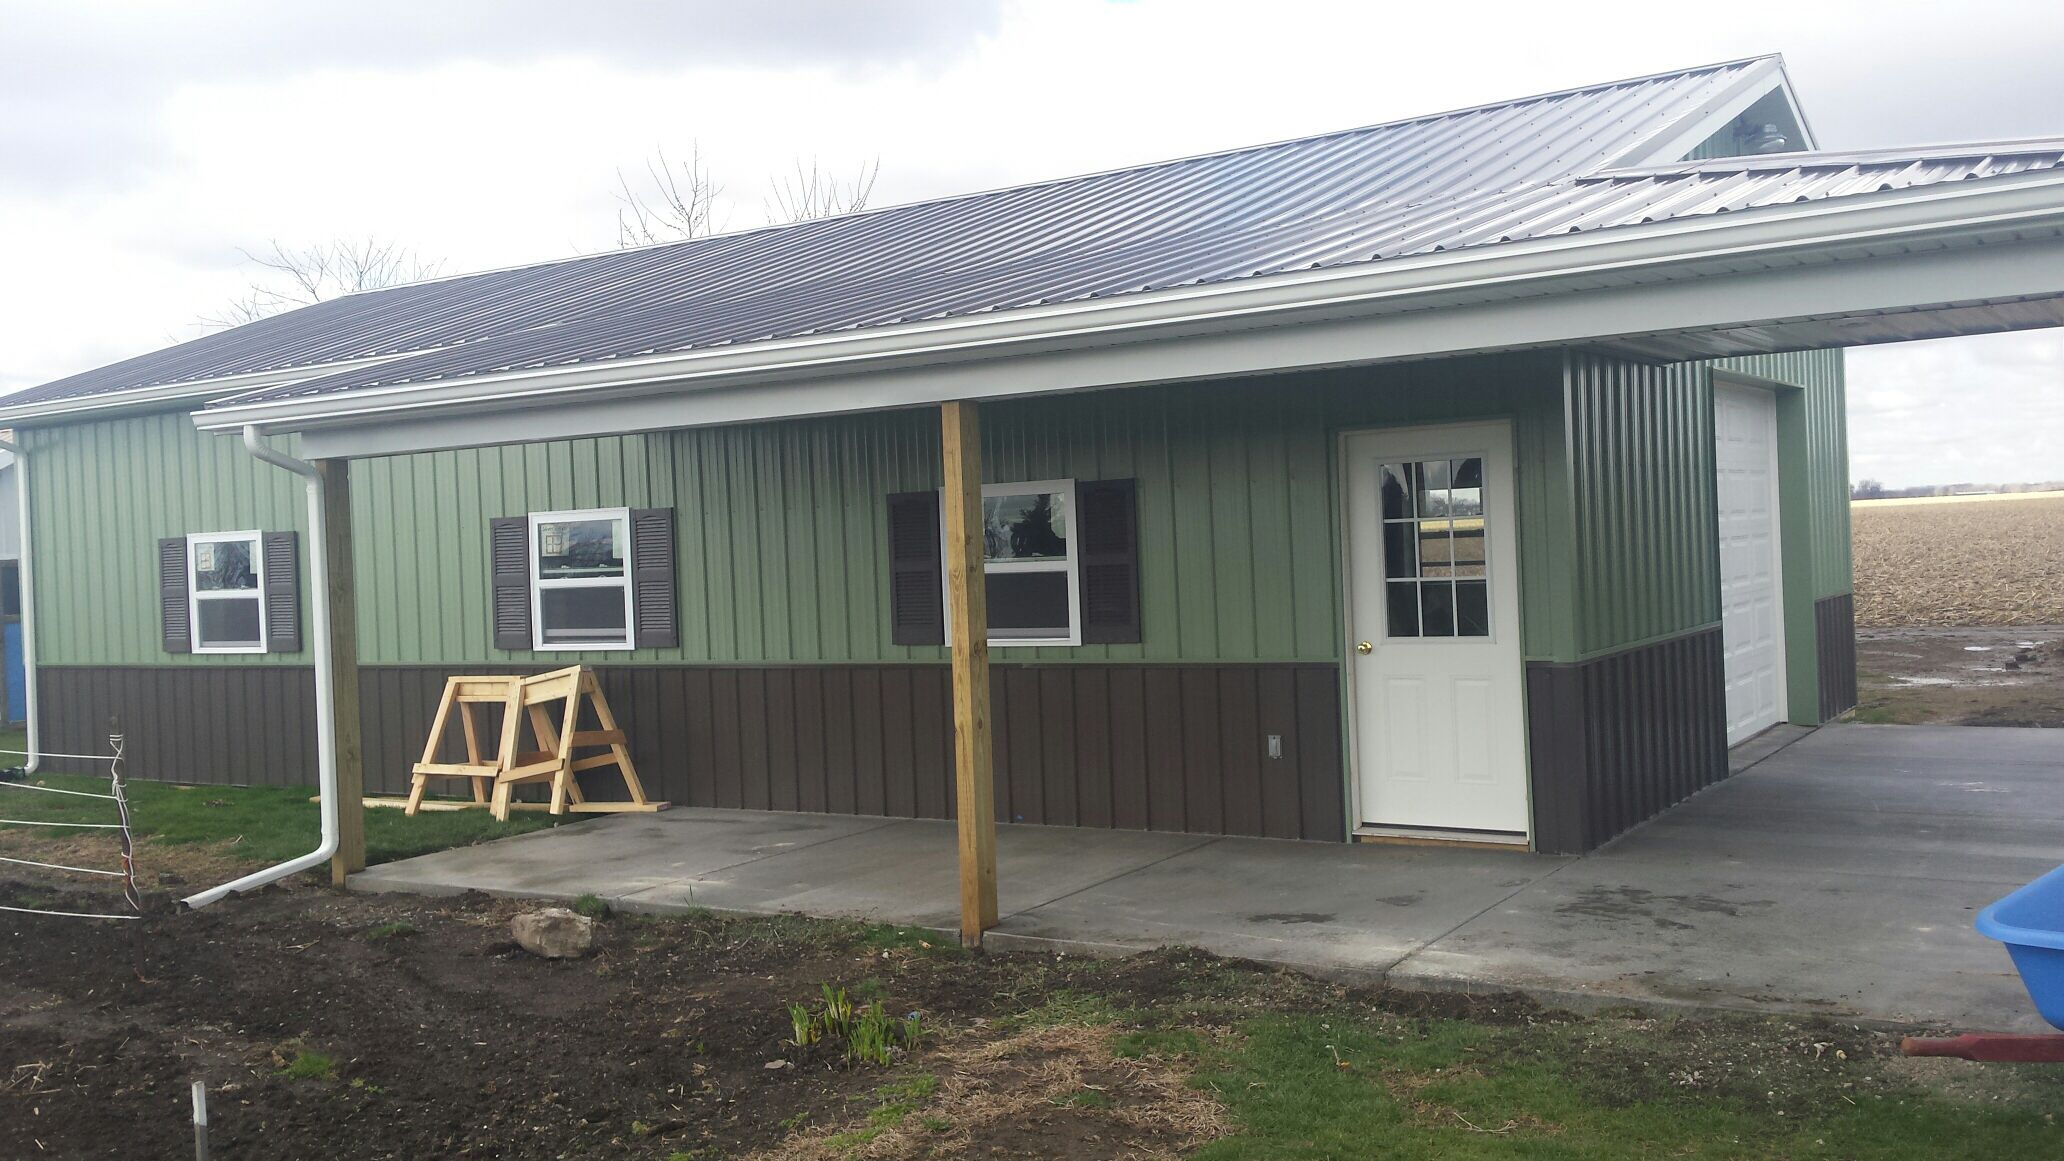 This post frame building was completed near Fremont, Ohio ...